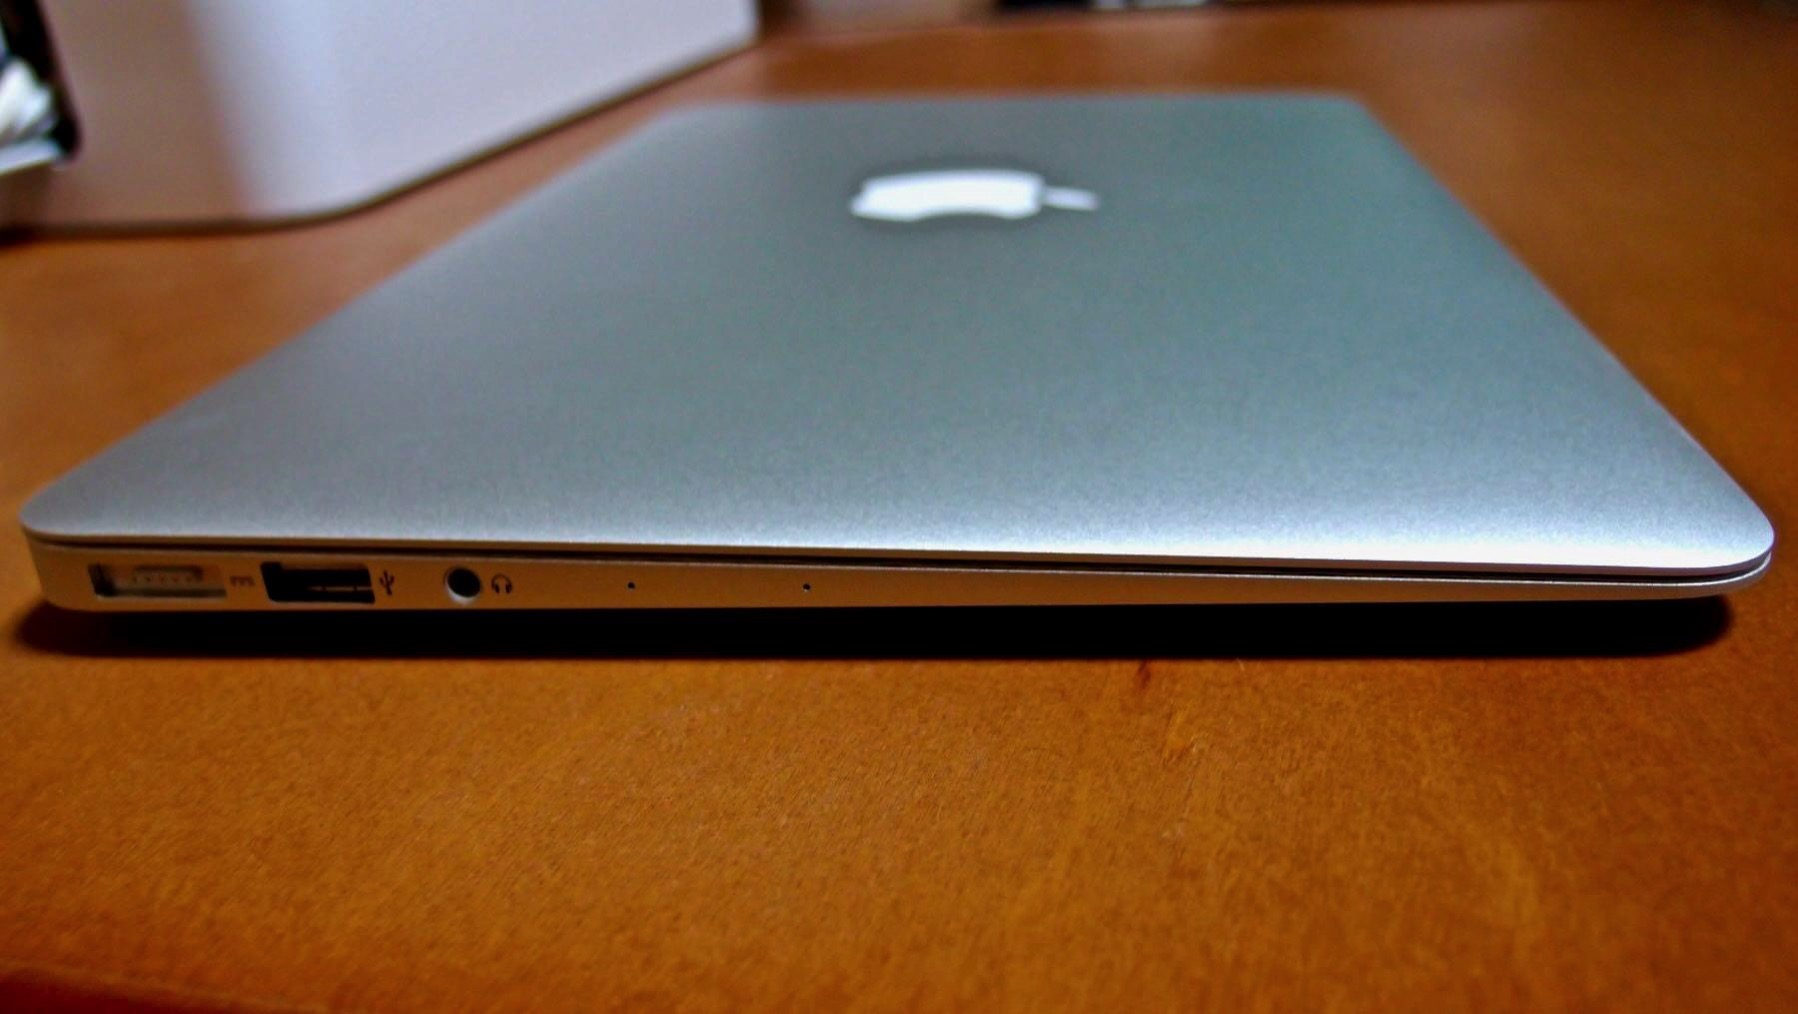 05 MacBook Air2013 Mid 11inch